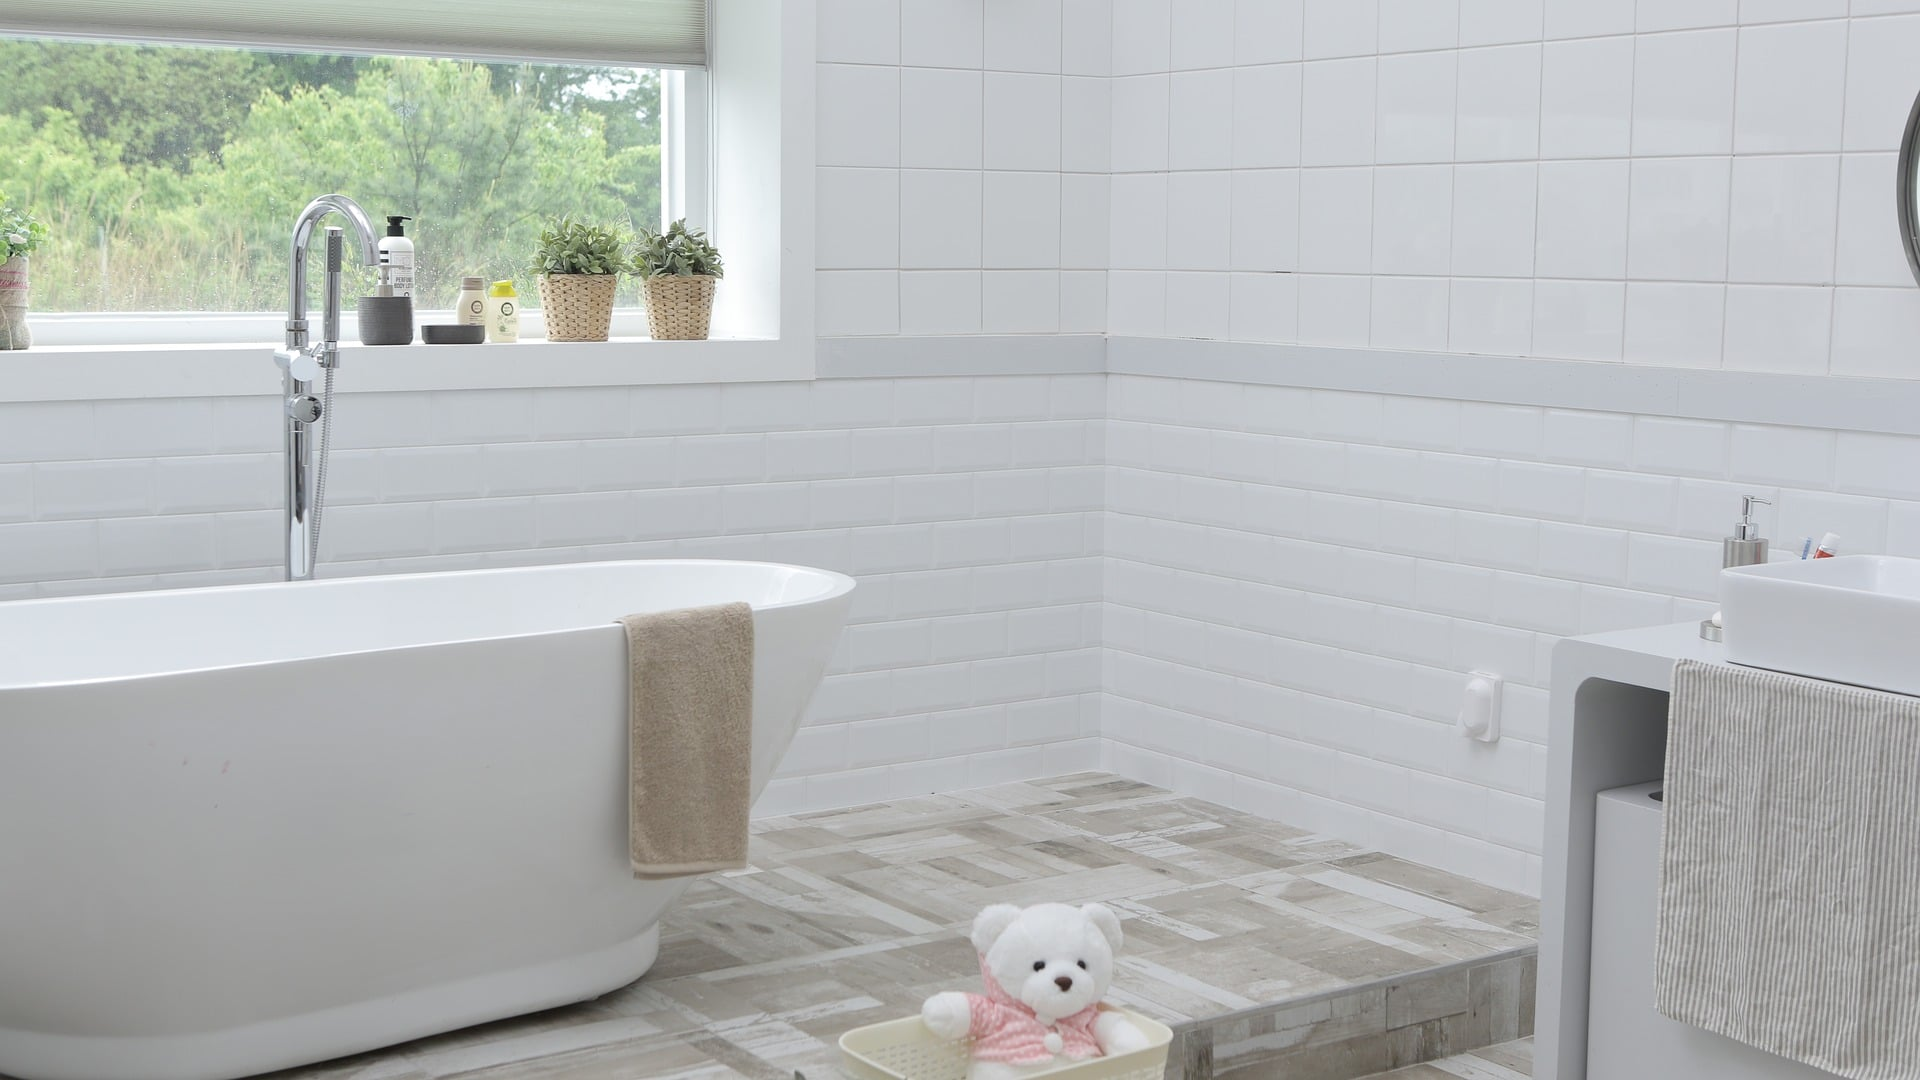 10 Bathroom Renovating Mistakes to Avoid - PD Construction